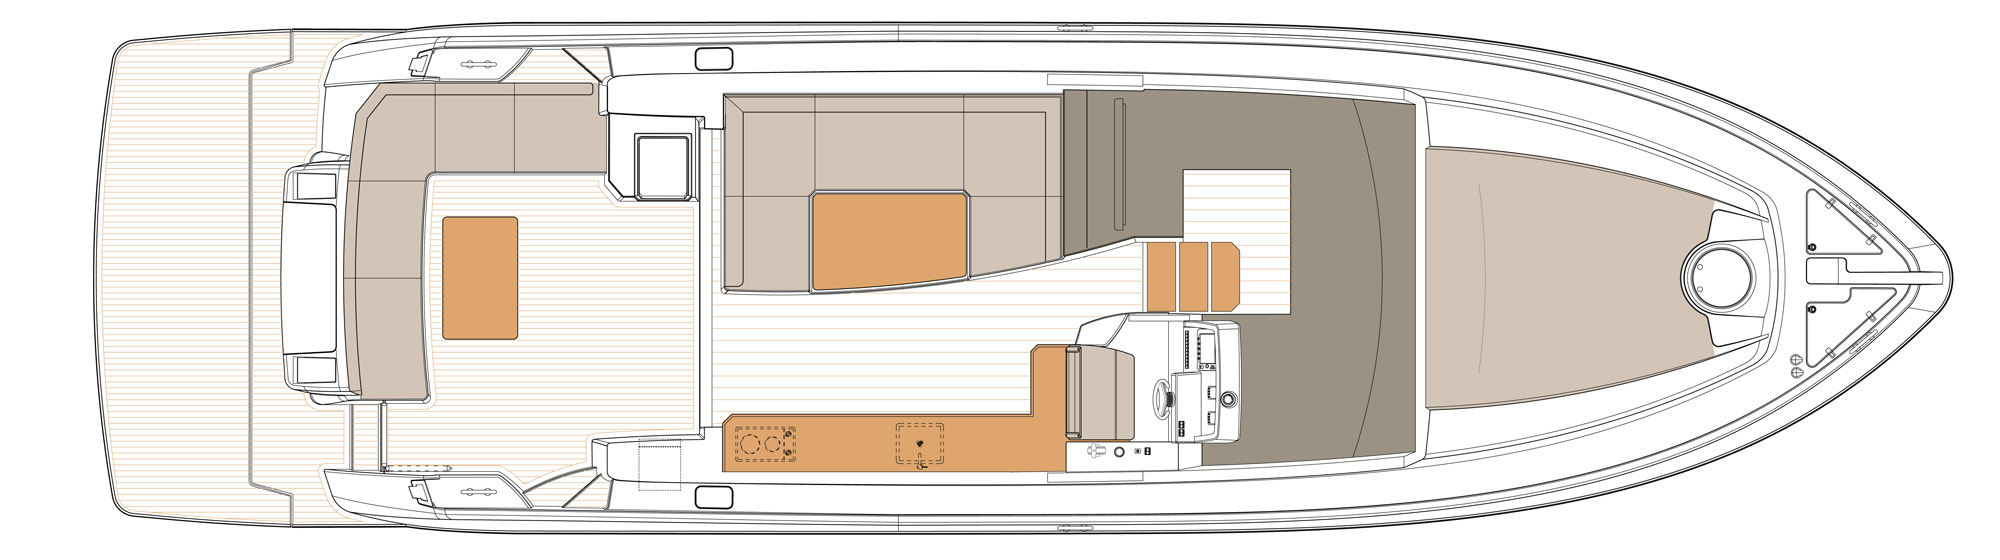 Main Deck - Option 2